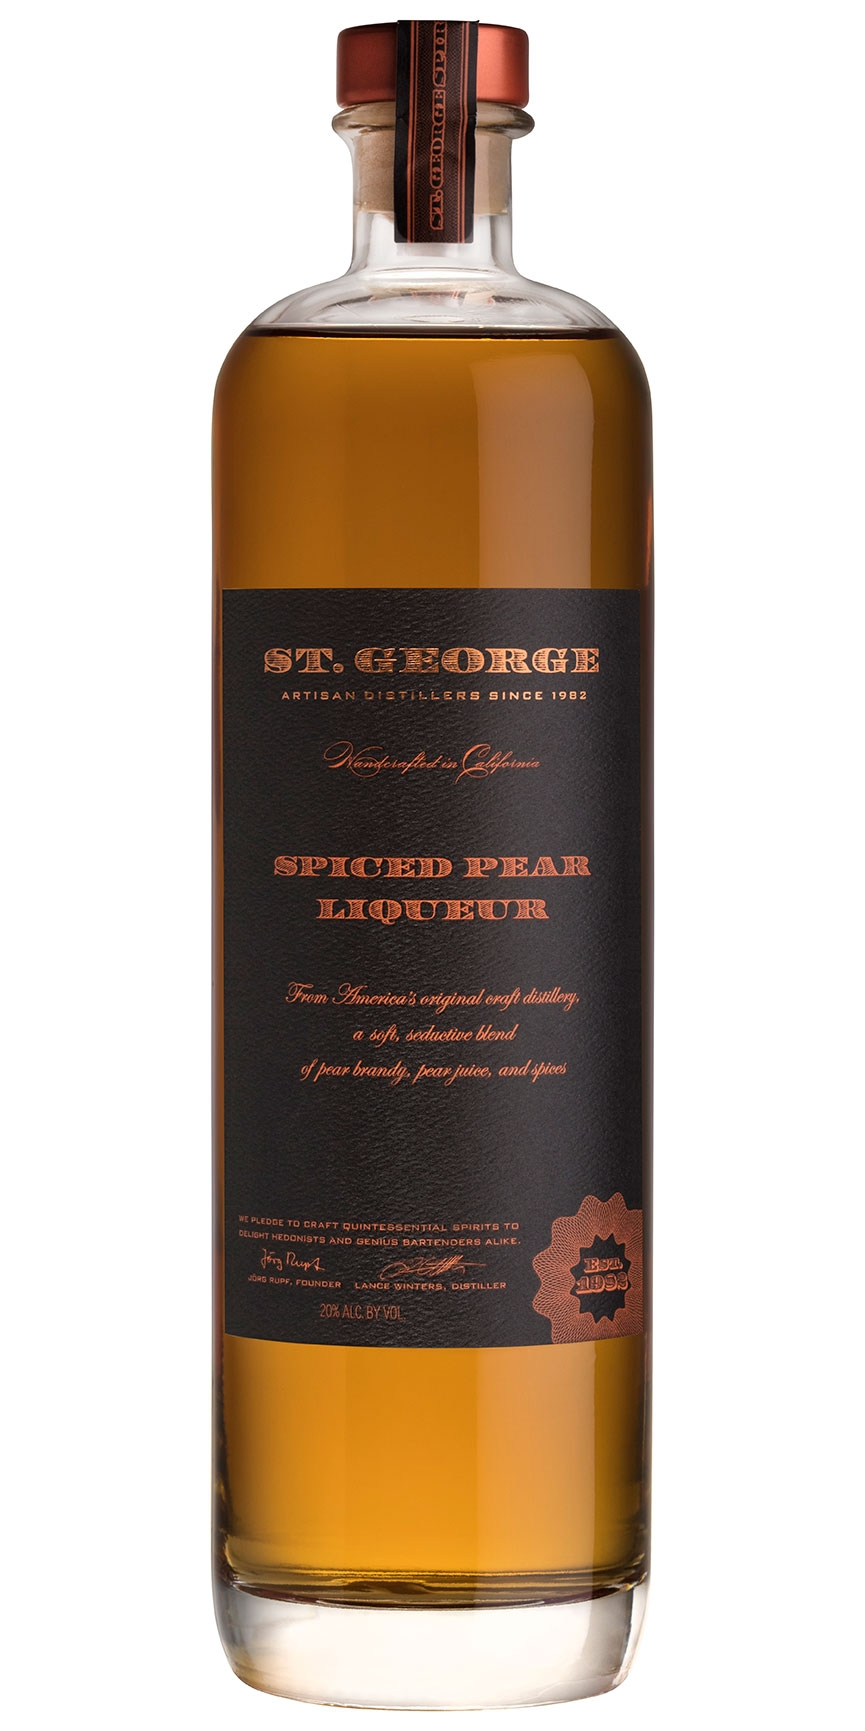 St. George Spiced Pear Liqueur